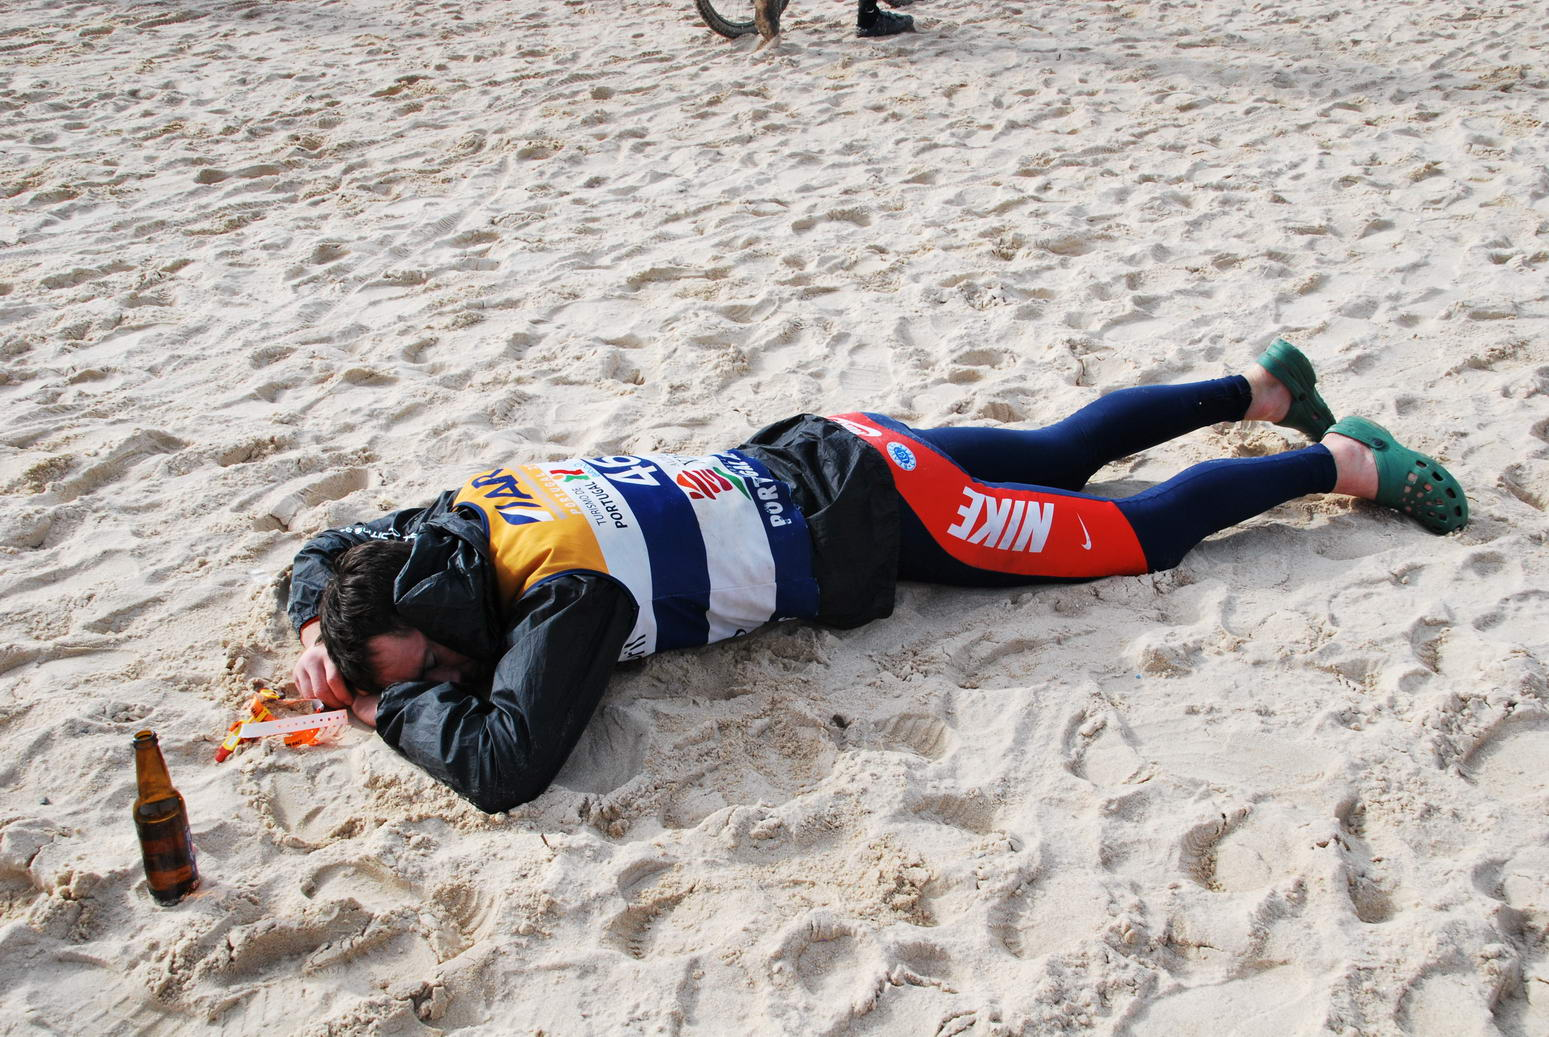 Chris has a nap after the race (Portugal ARWC 2009)